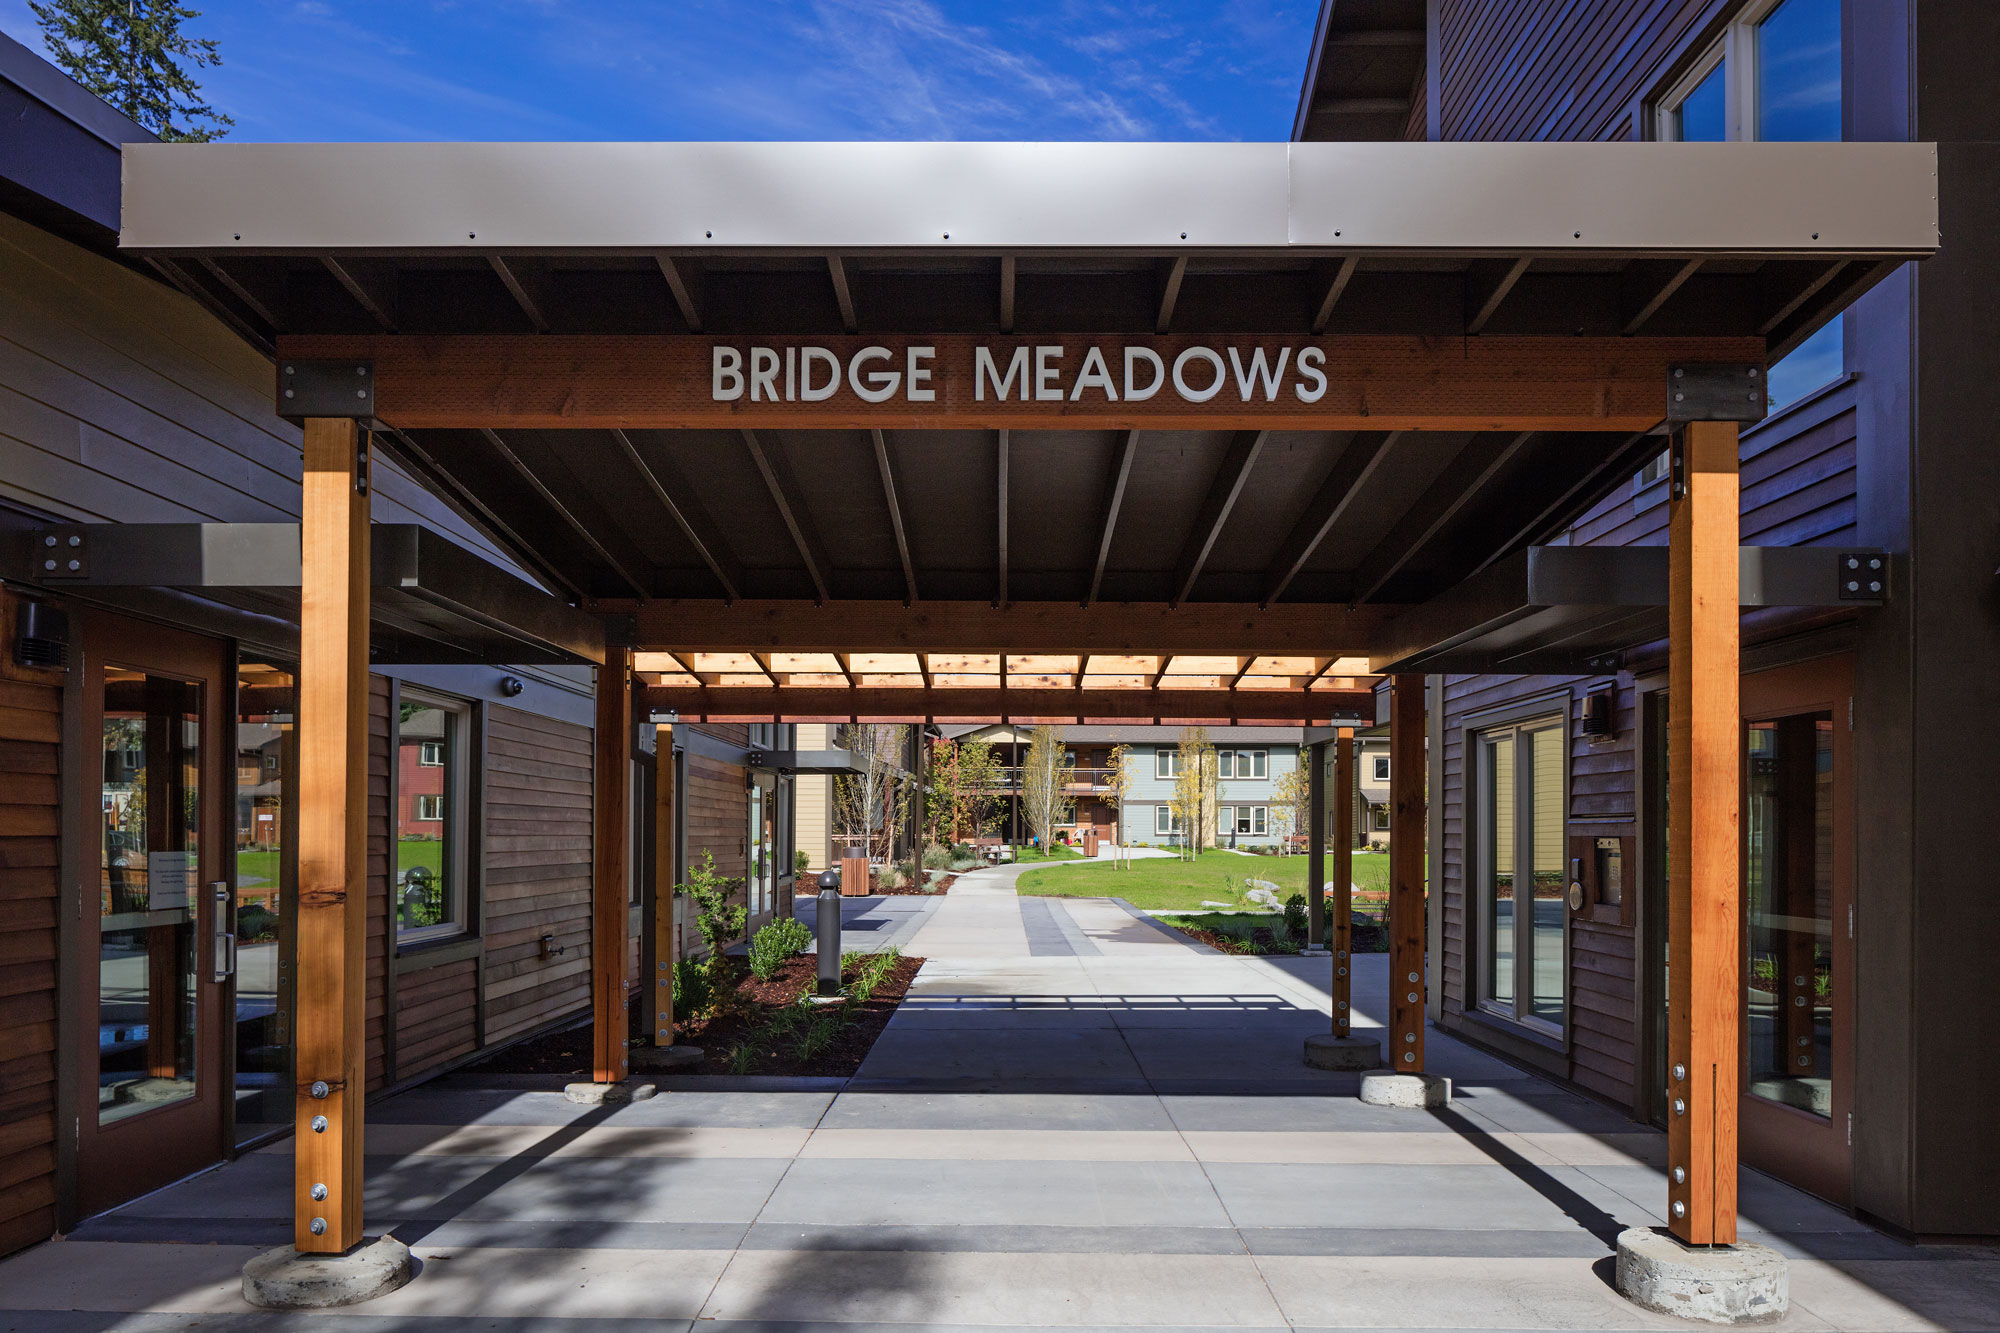 Copy of BRIDGE MEADOWS - BEAVERTON